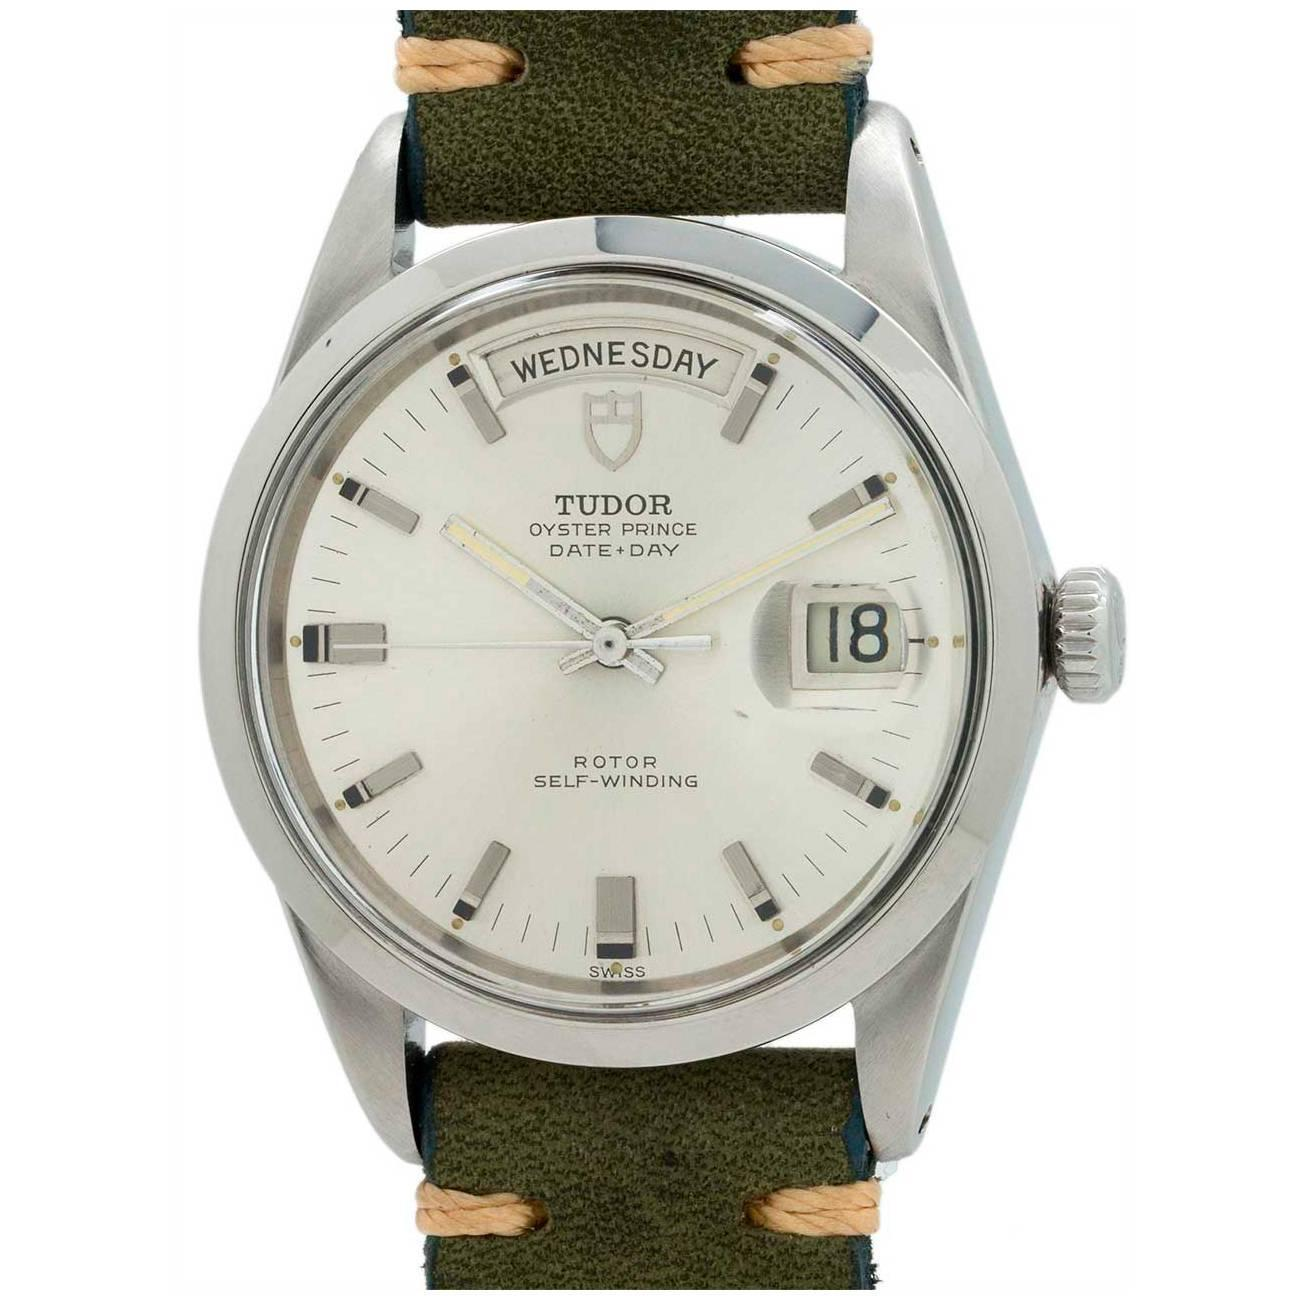 Tudor Classic Platinum: Tudor Oyster Prince Day Date Wristwatch Ref 701710 At 1stdibs